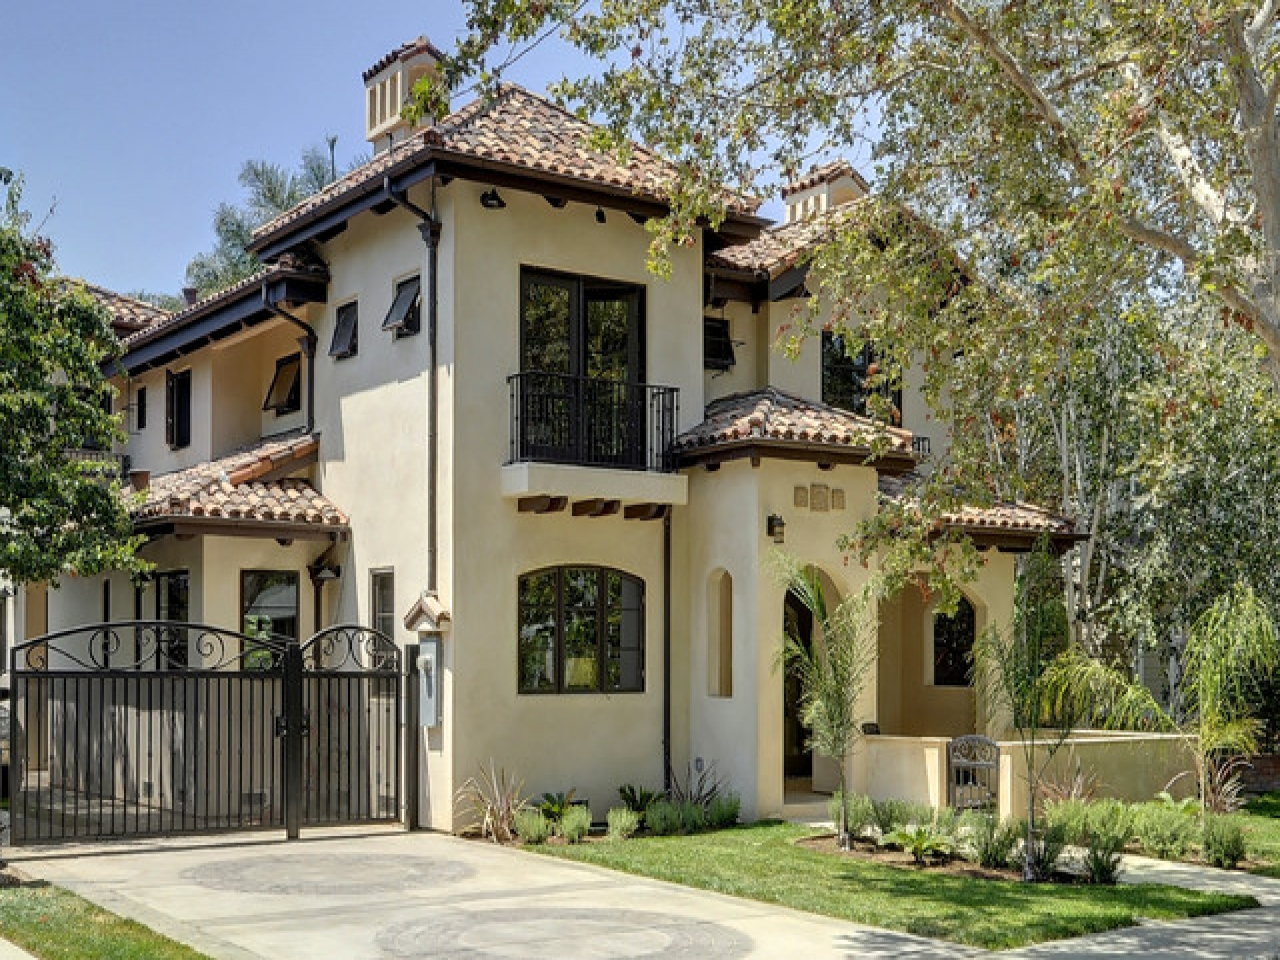 Ranch Style House Exterior Facelift Spanish Style Exterior